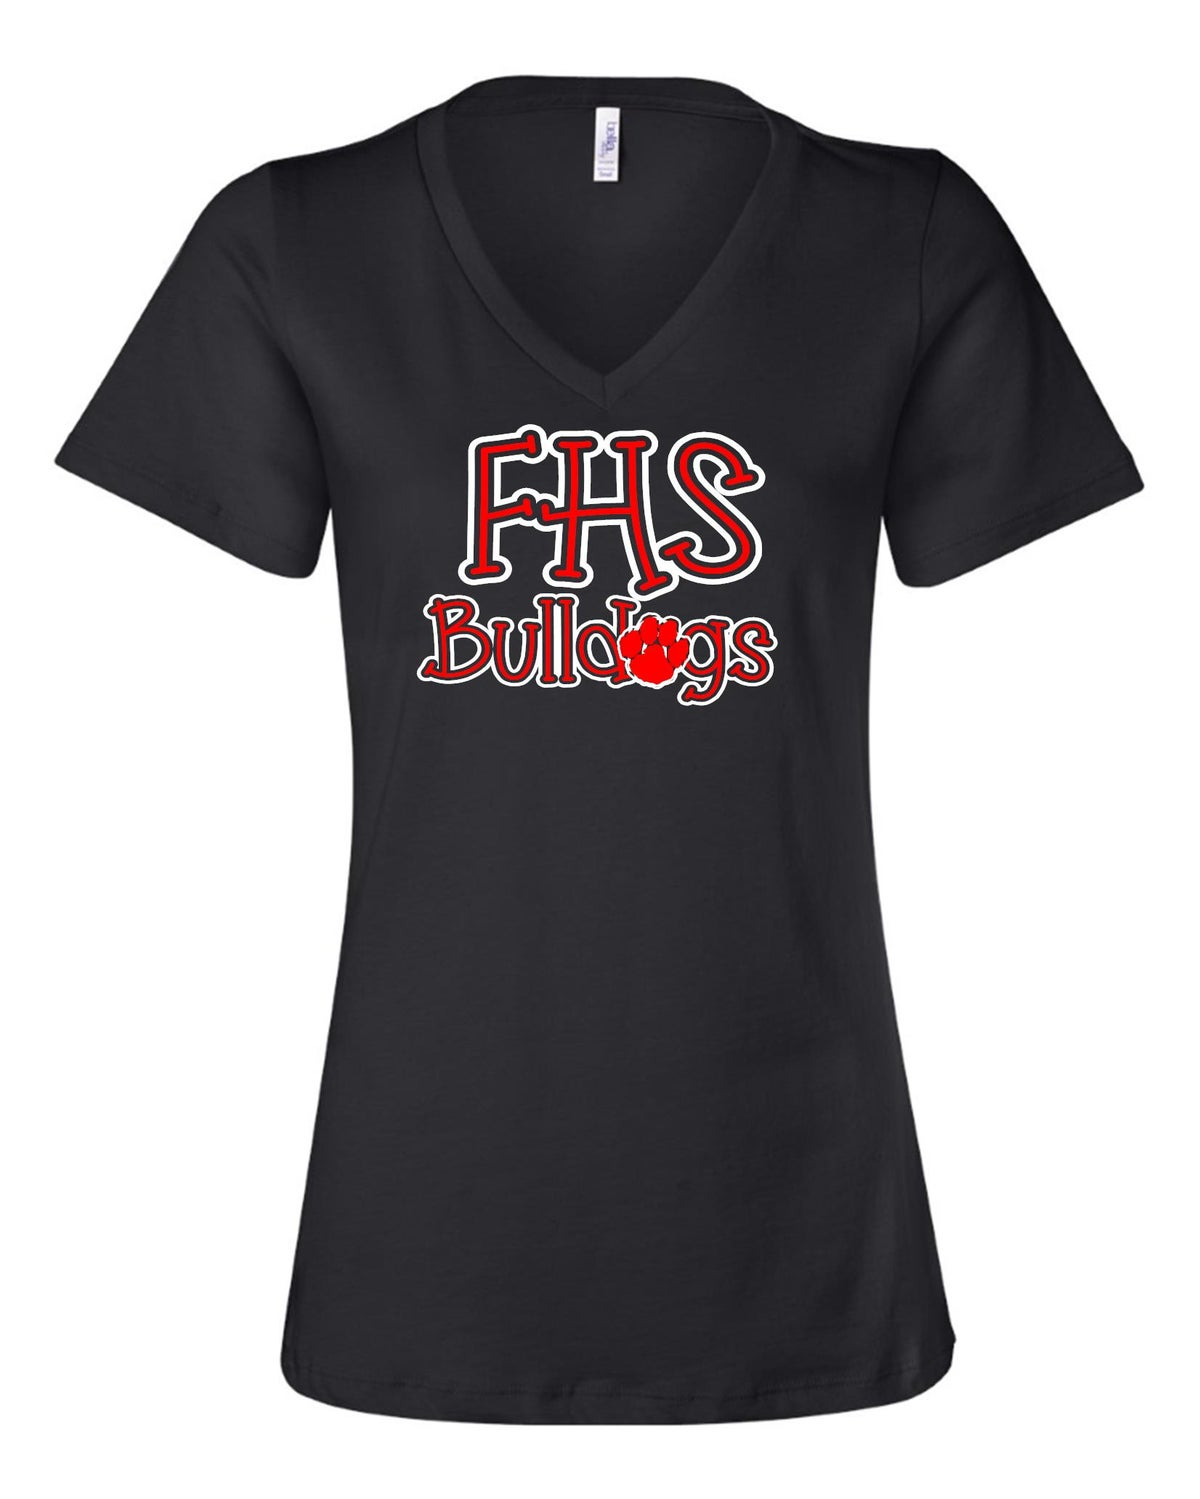 Image of Ladies Relaxed Fit Bulldog Tee